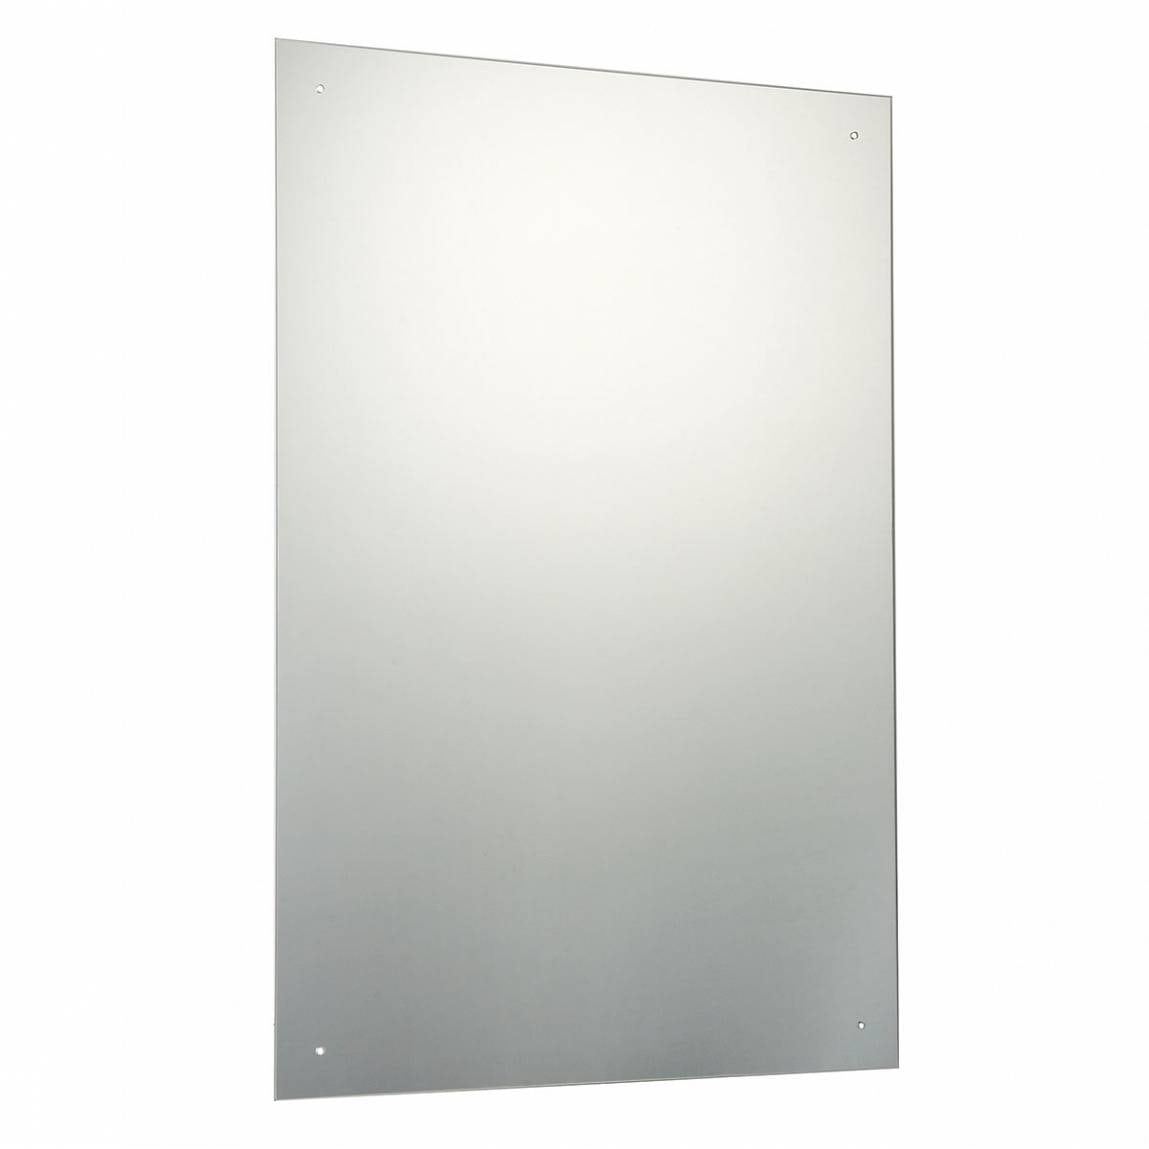 Orchard rectangular bevelled edge drilled mirror 600 x 900